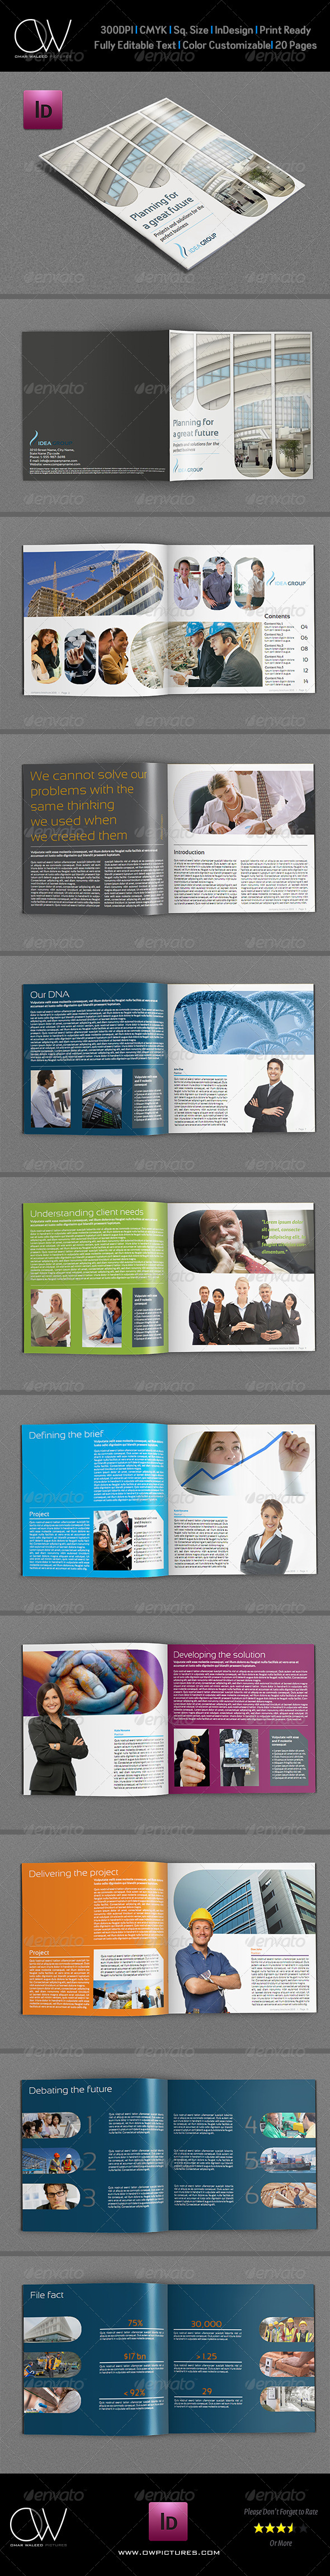 GraphicRiver Company Brochure Template Vol.10 20 Pages 5769179